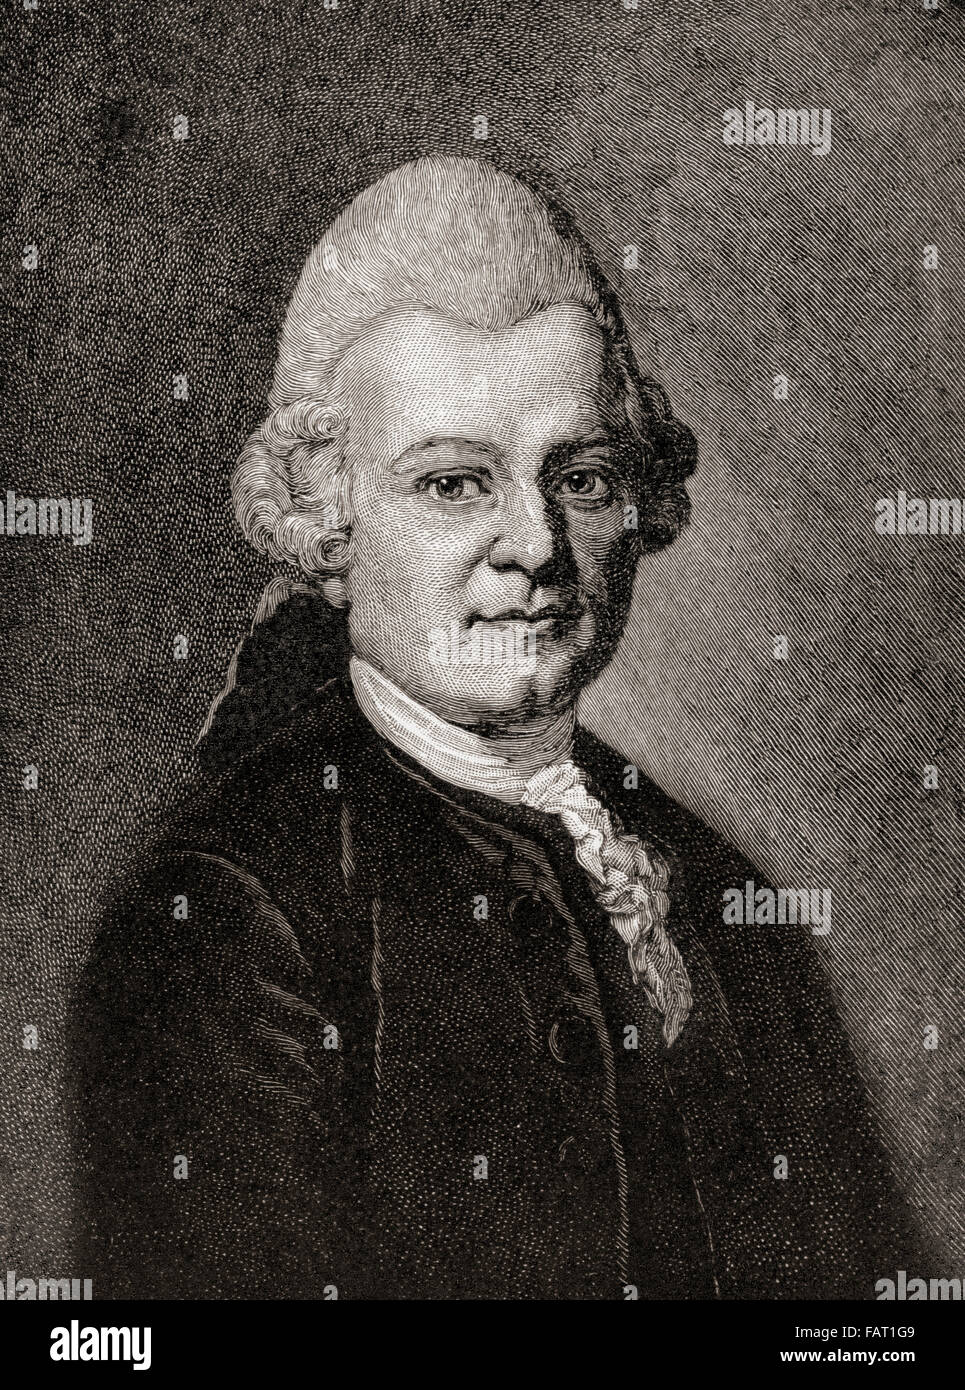 Gotthold Ephraim Lessing, 1729 –1781.  German writer, philosopher, dramatist, publicist and art critic. Stock Photo